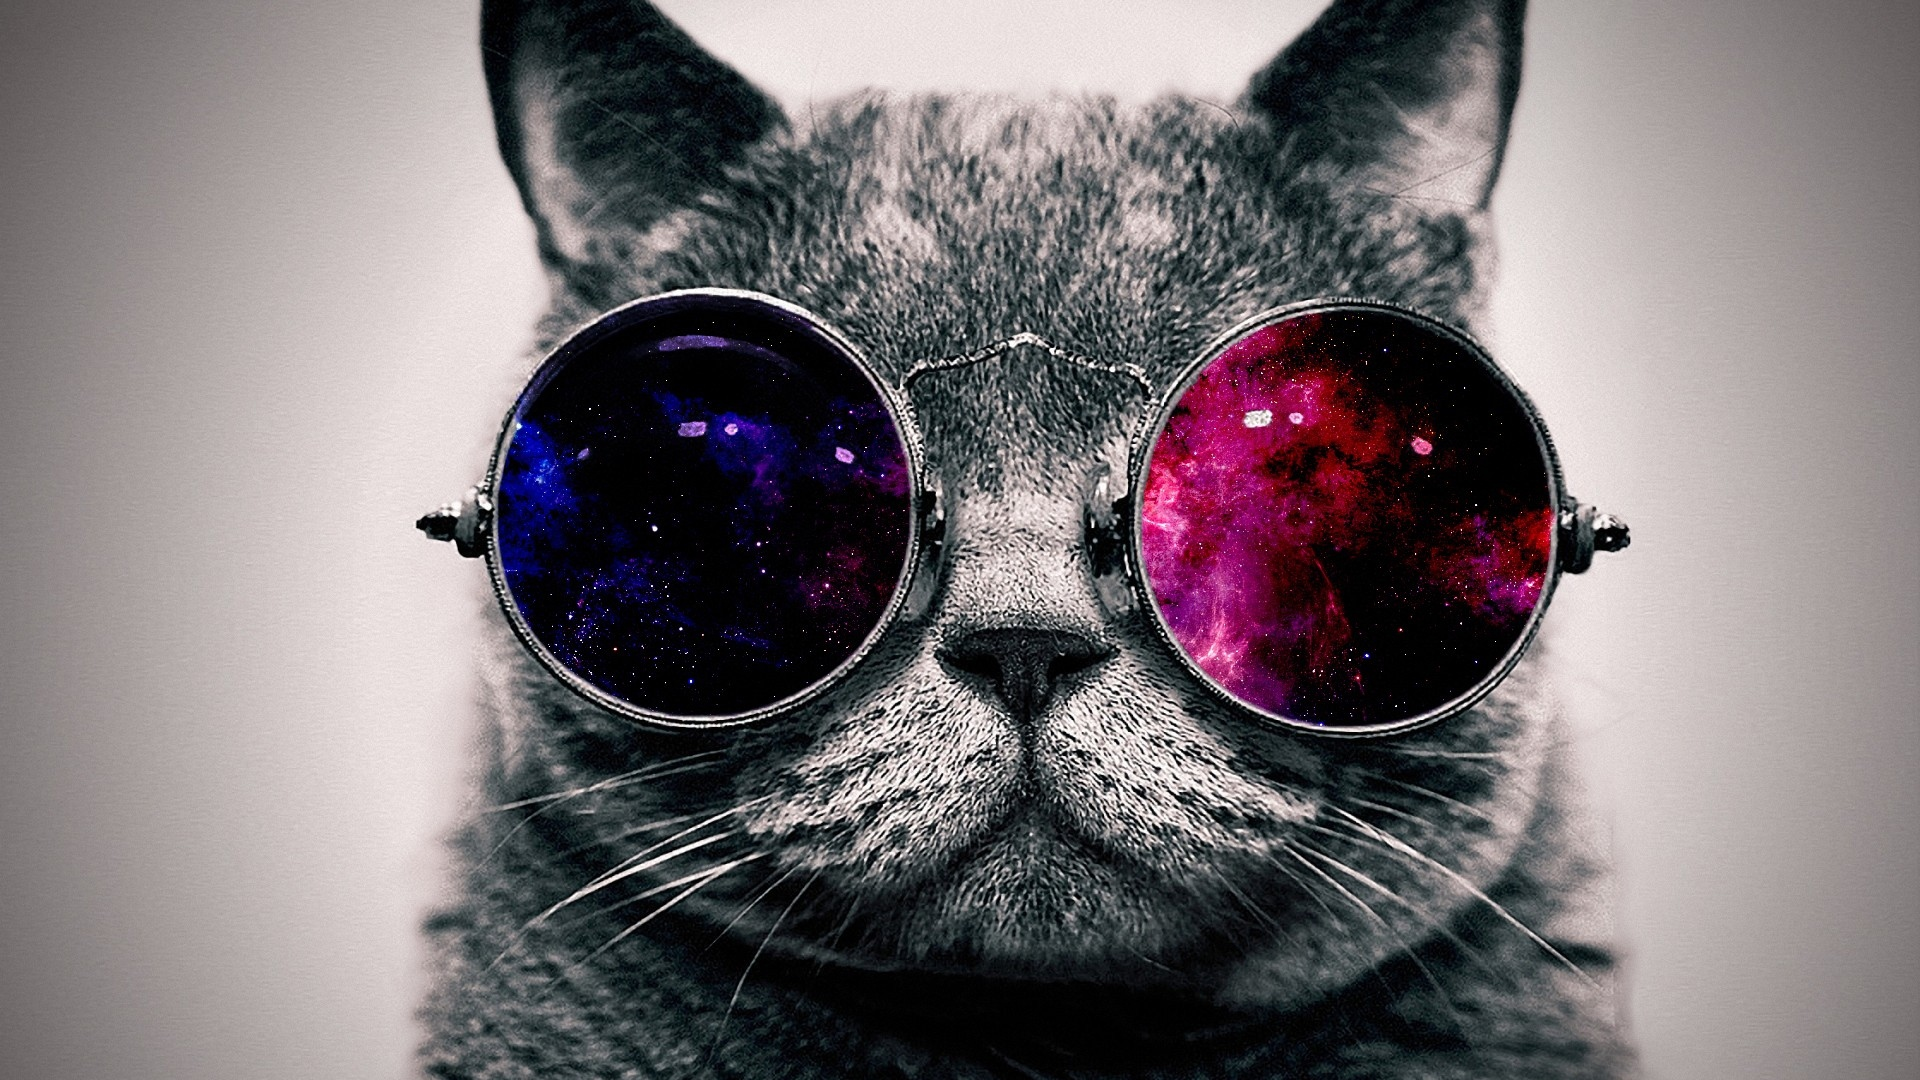 Download Wallpaper 1920x1080 cat face glasses thick Full HD 1080p 1920x1080